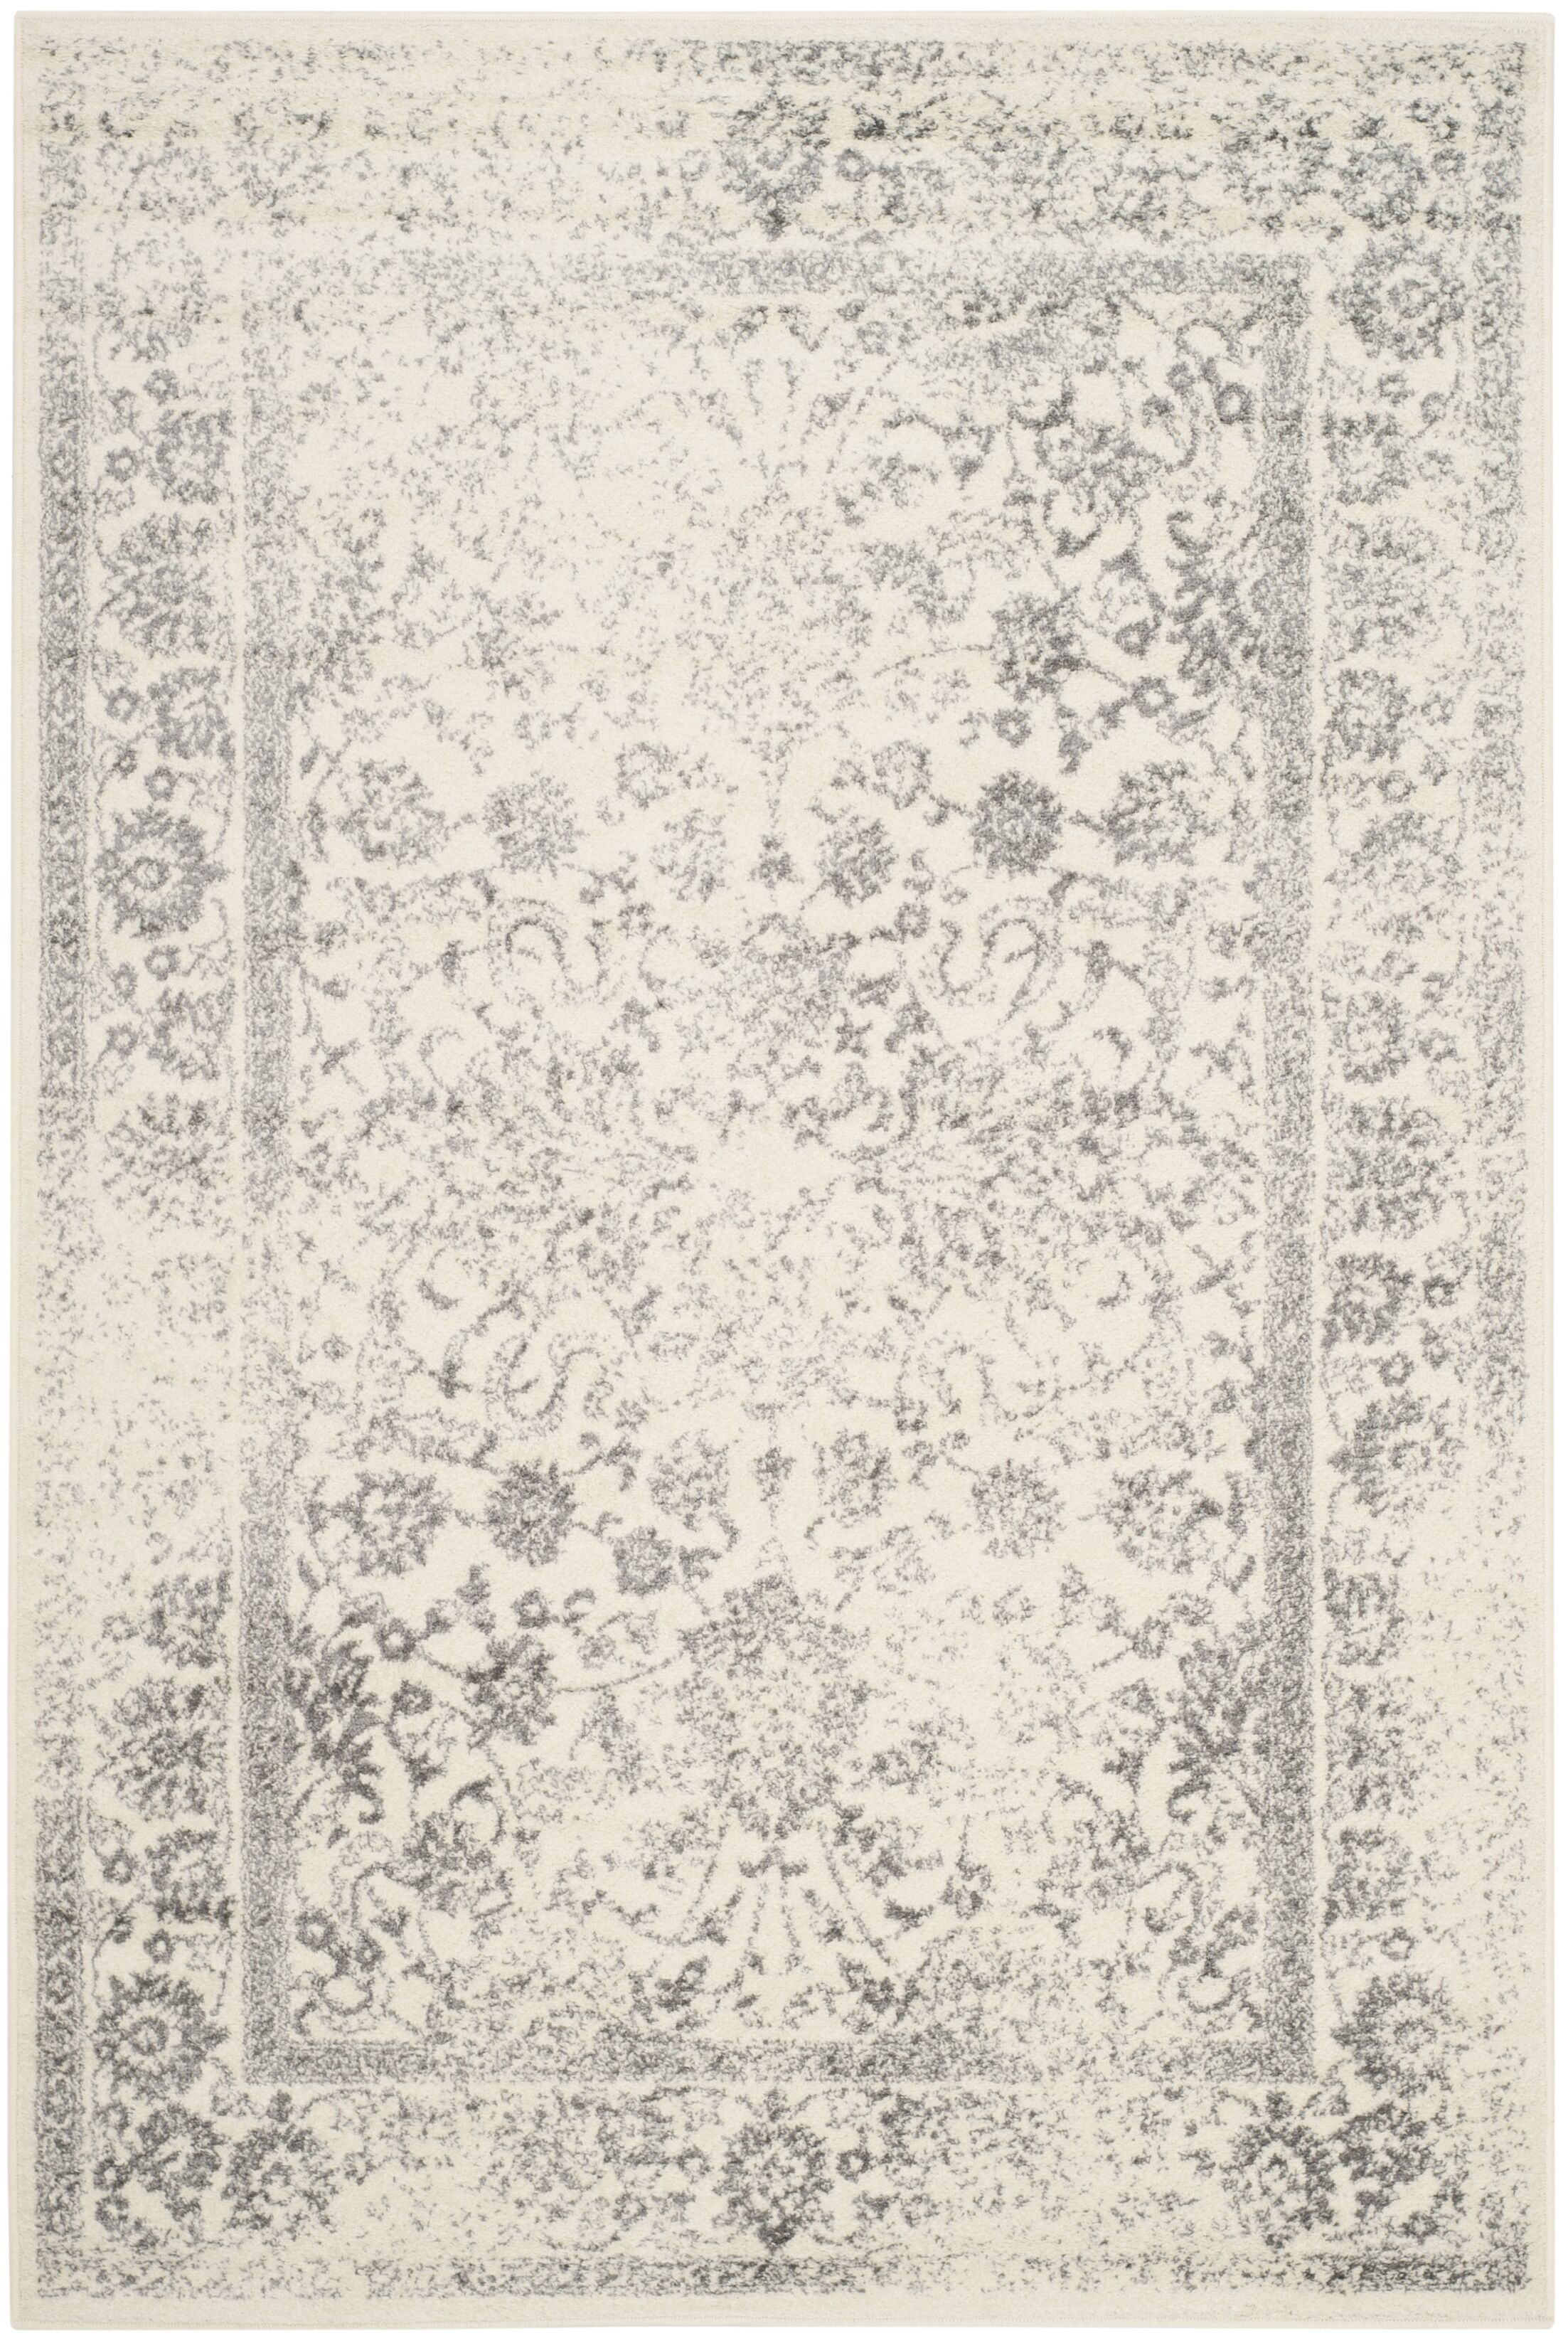 Power Loom Aiken Ivory/Silver Area Rug Rug Size: Rectangle 5'1